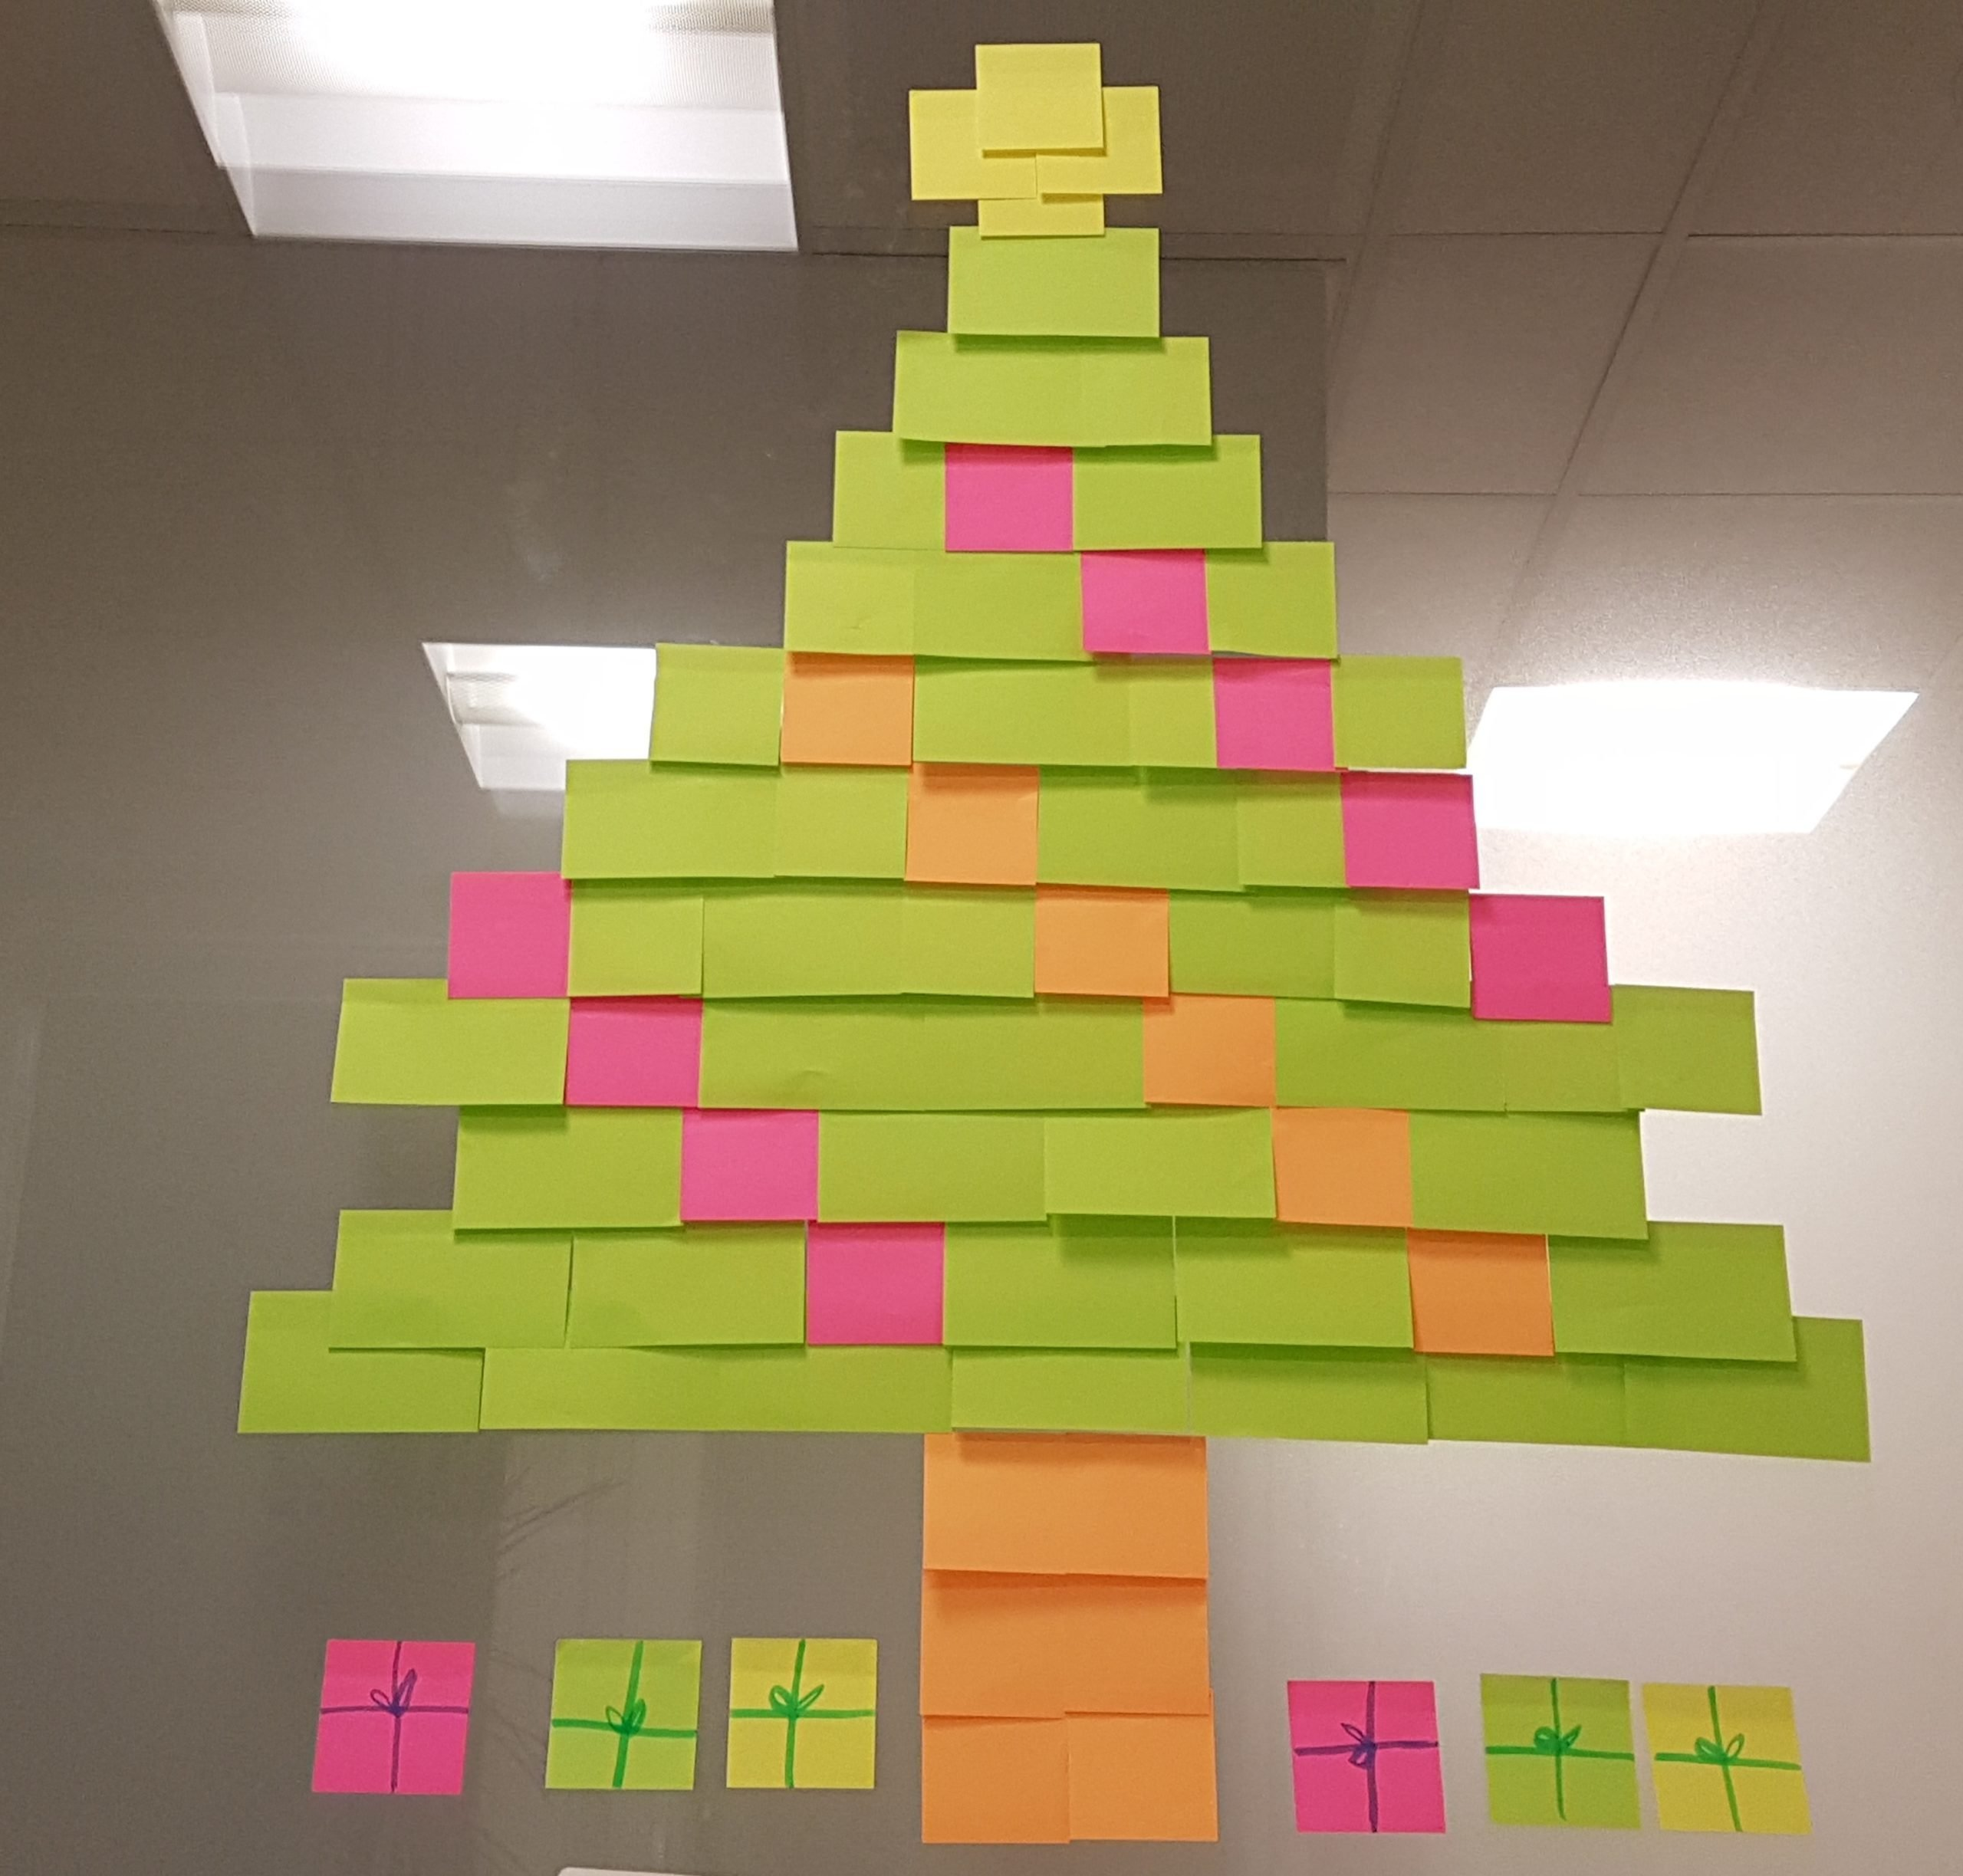 Adhesive Notes In Christmas Tree Shape On Glass Window